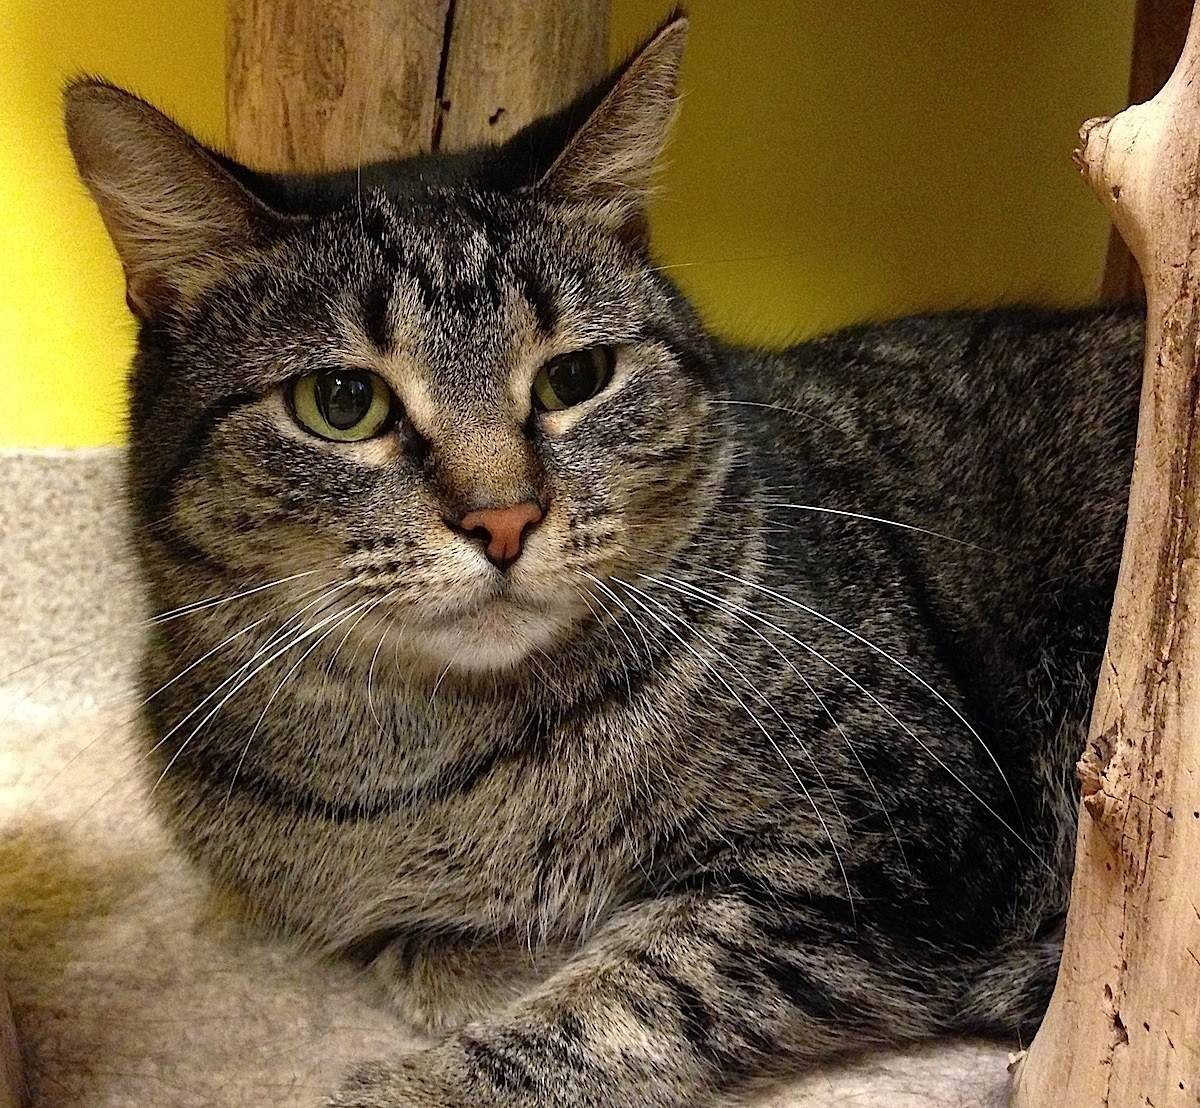 Sweetie is a 2-year-old, female shorthair.